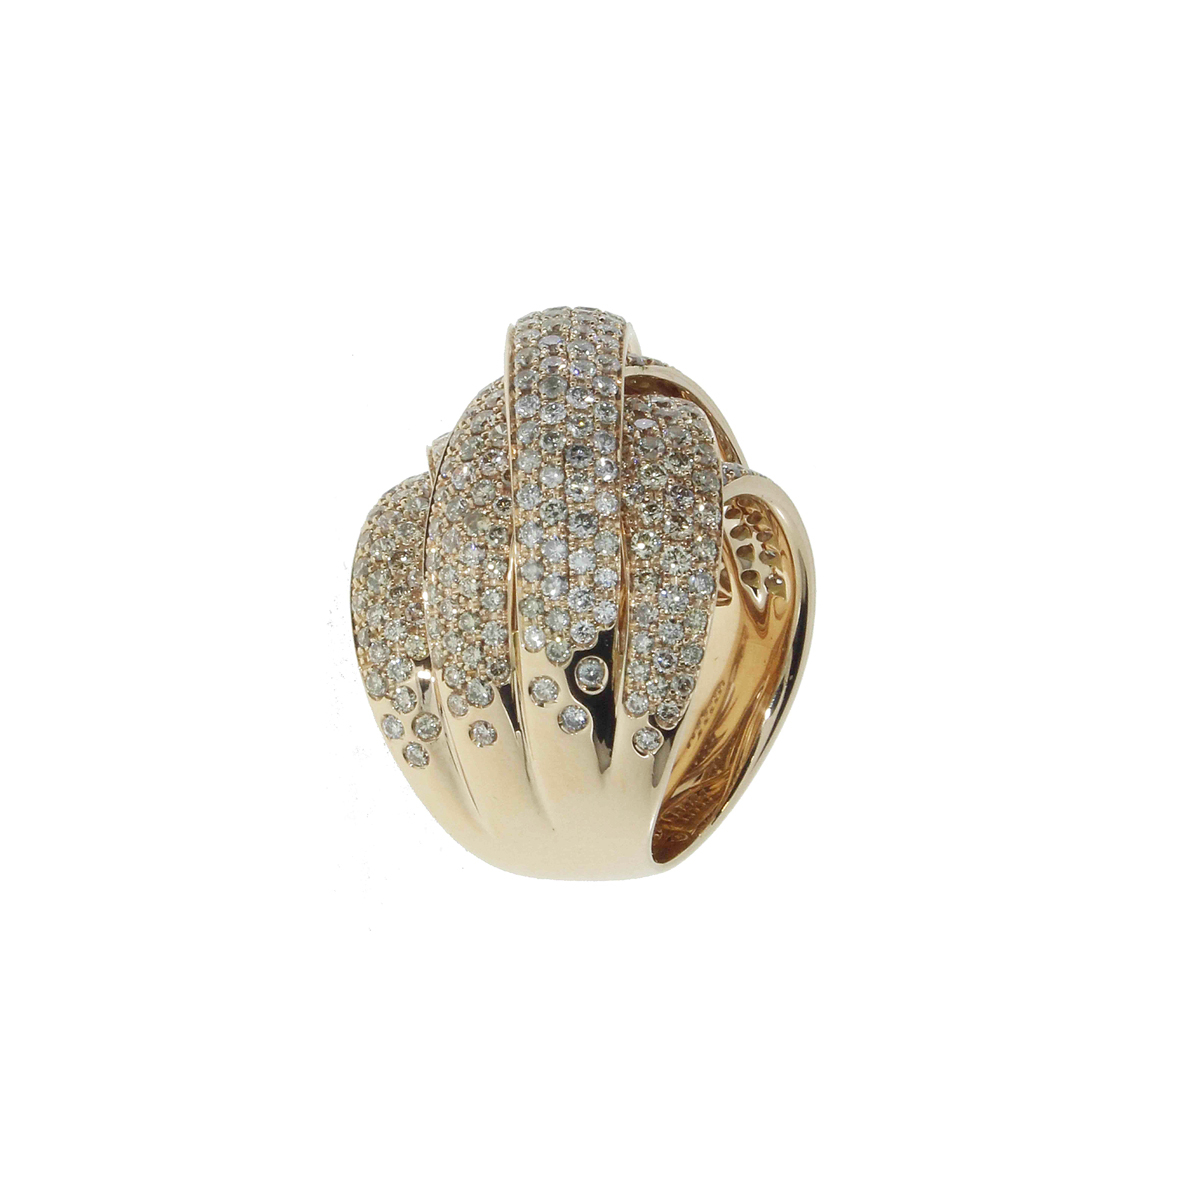 Intertwined Band Ring with White, Chocolate, and Grey Diamonds